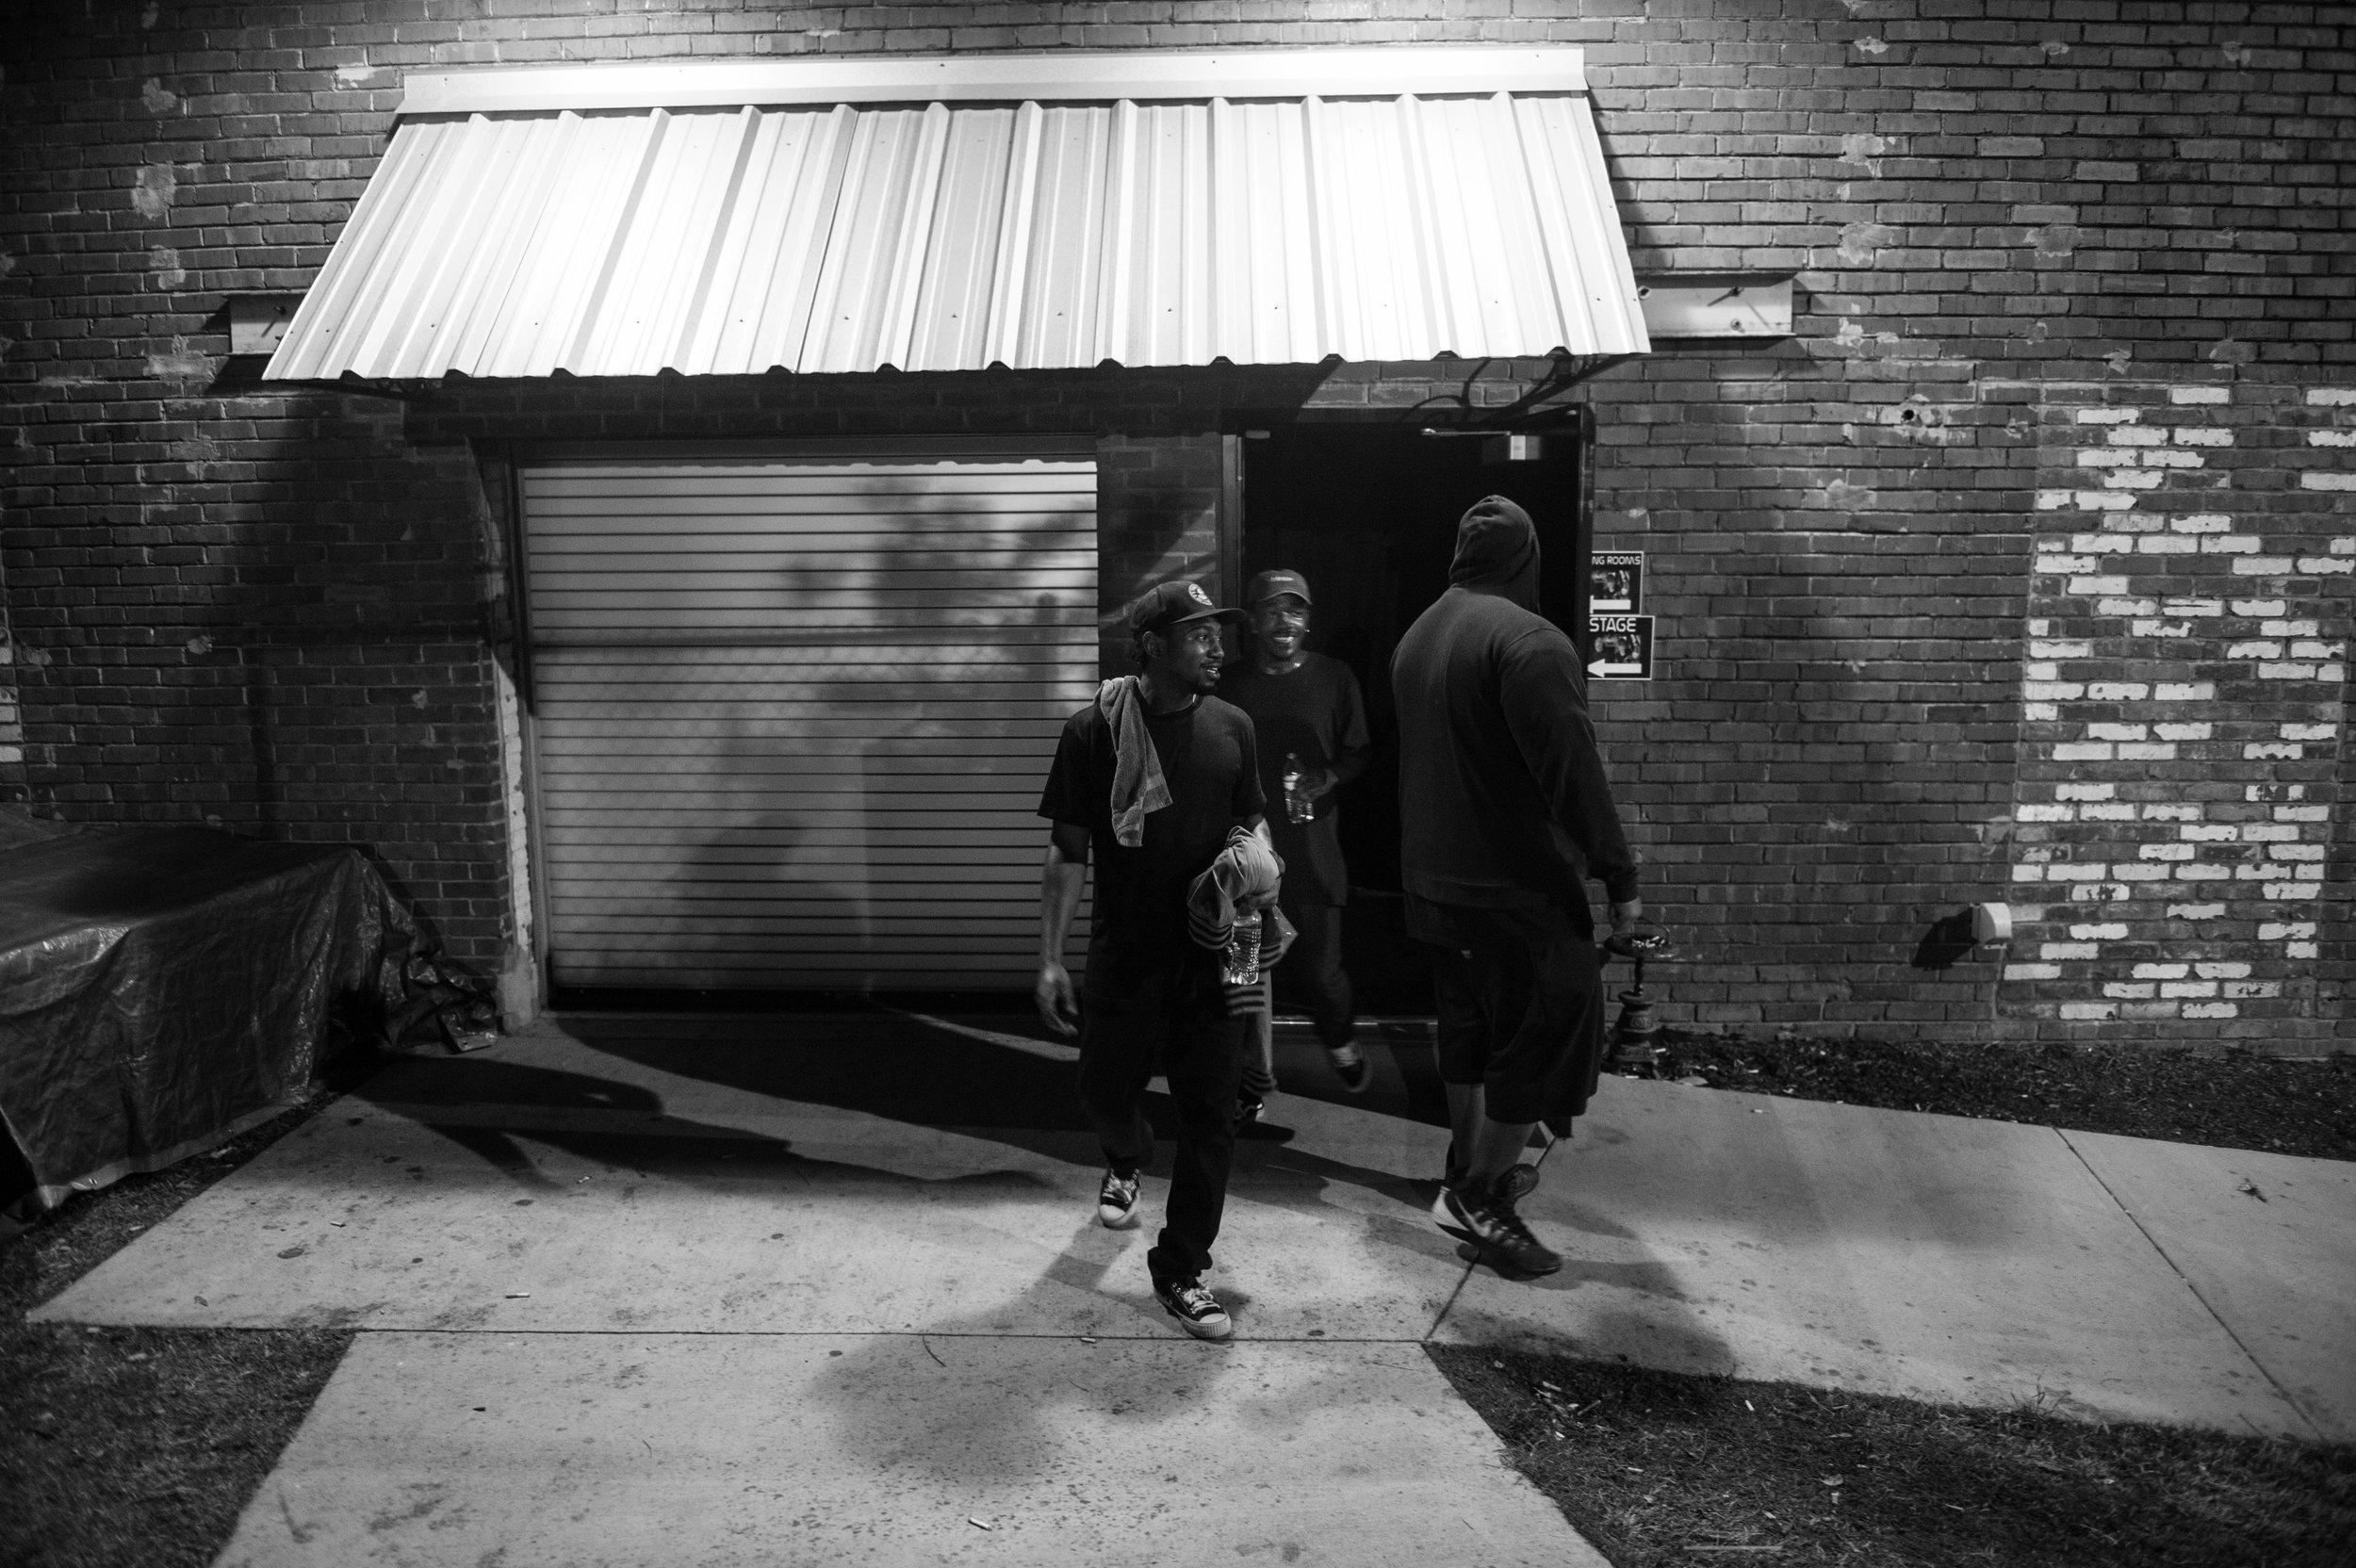 Dizzy and Moeski leaving the venue after a show in Columbia, SC